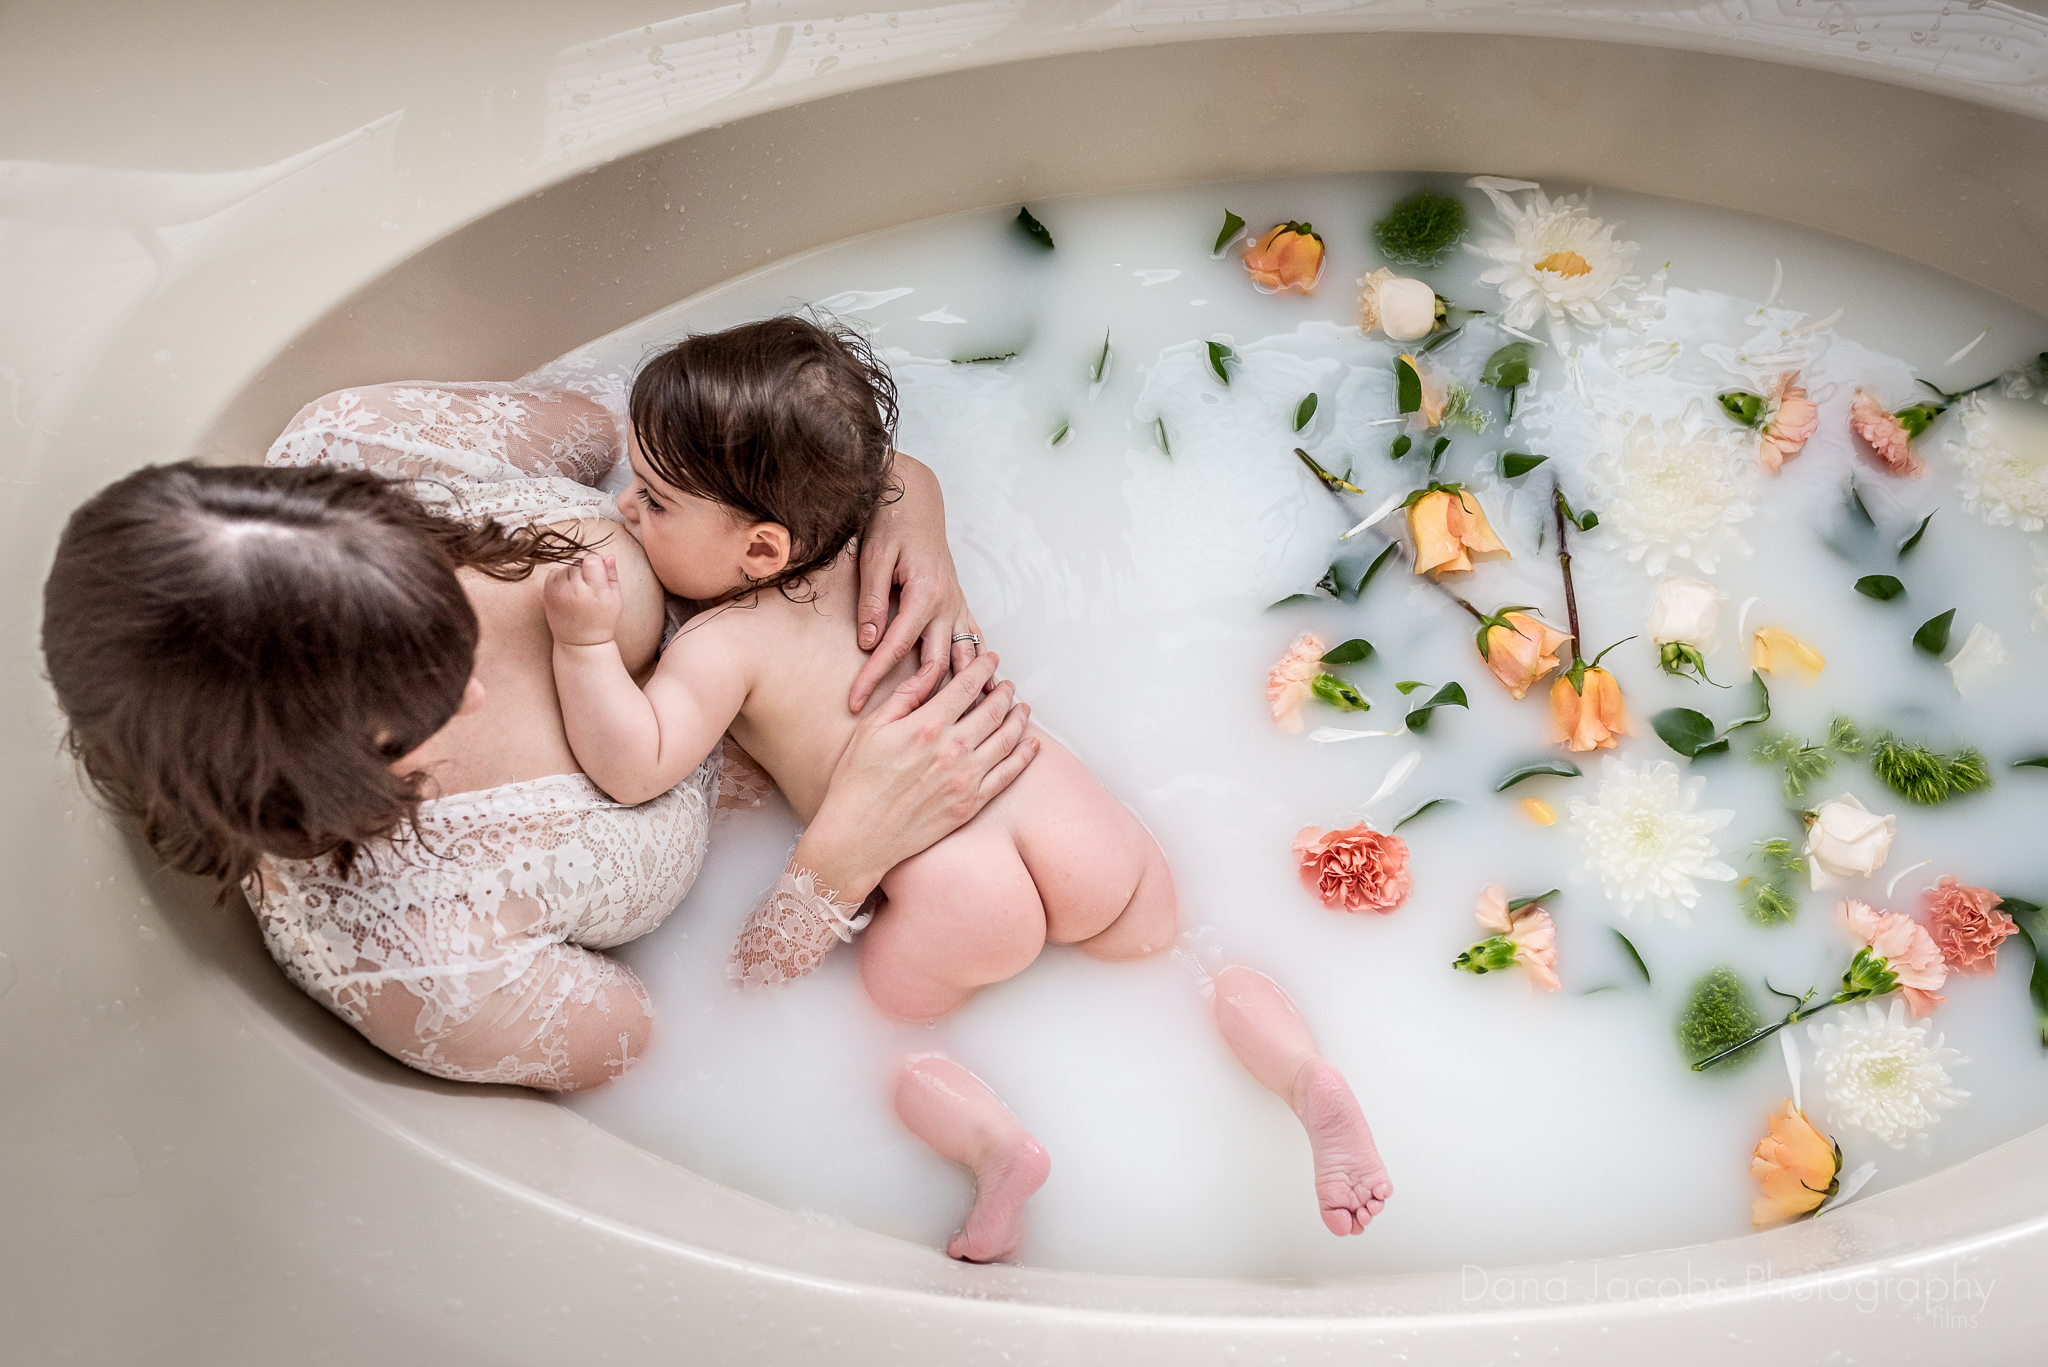 Dana-Jacobs-Photography-Milk-bath-session-St-Louis-5-8109.JPG